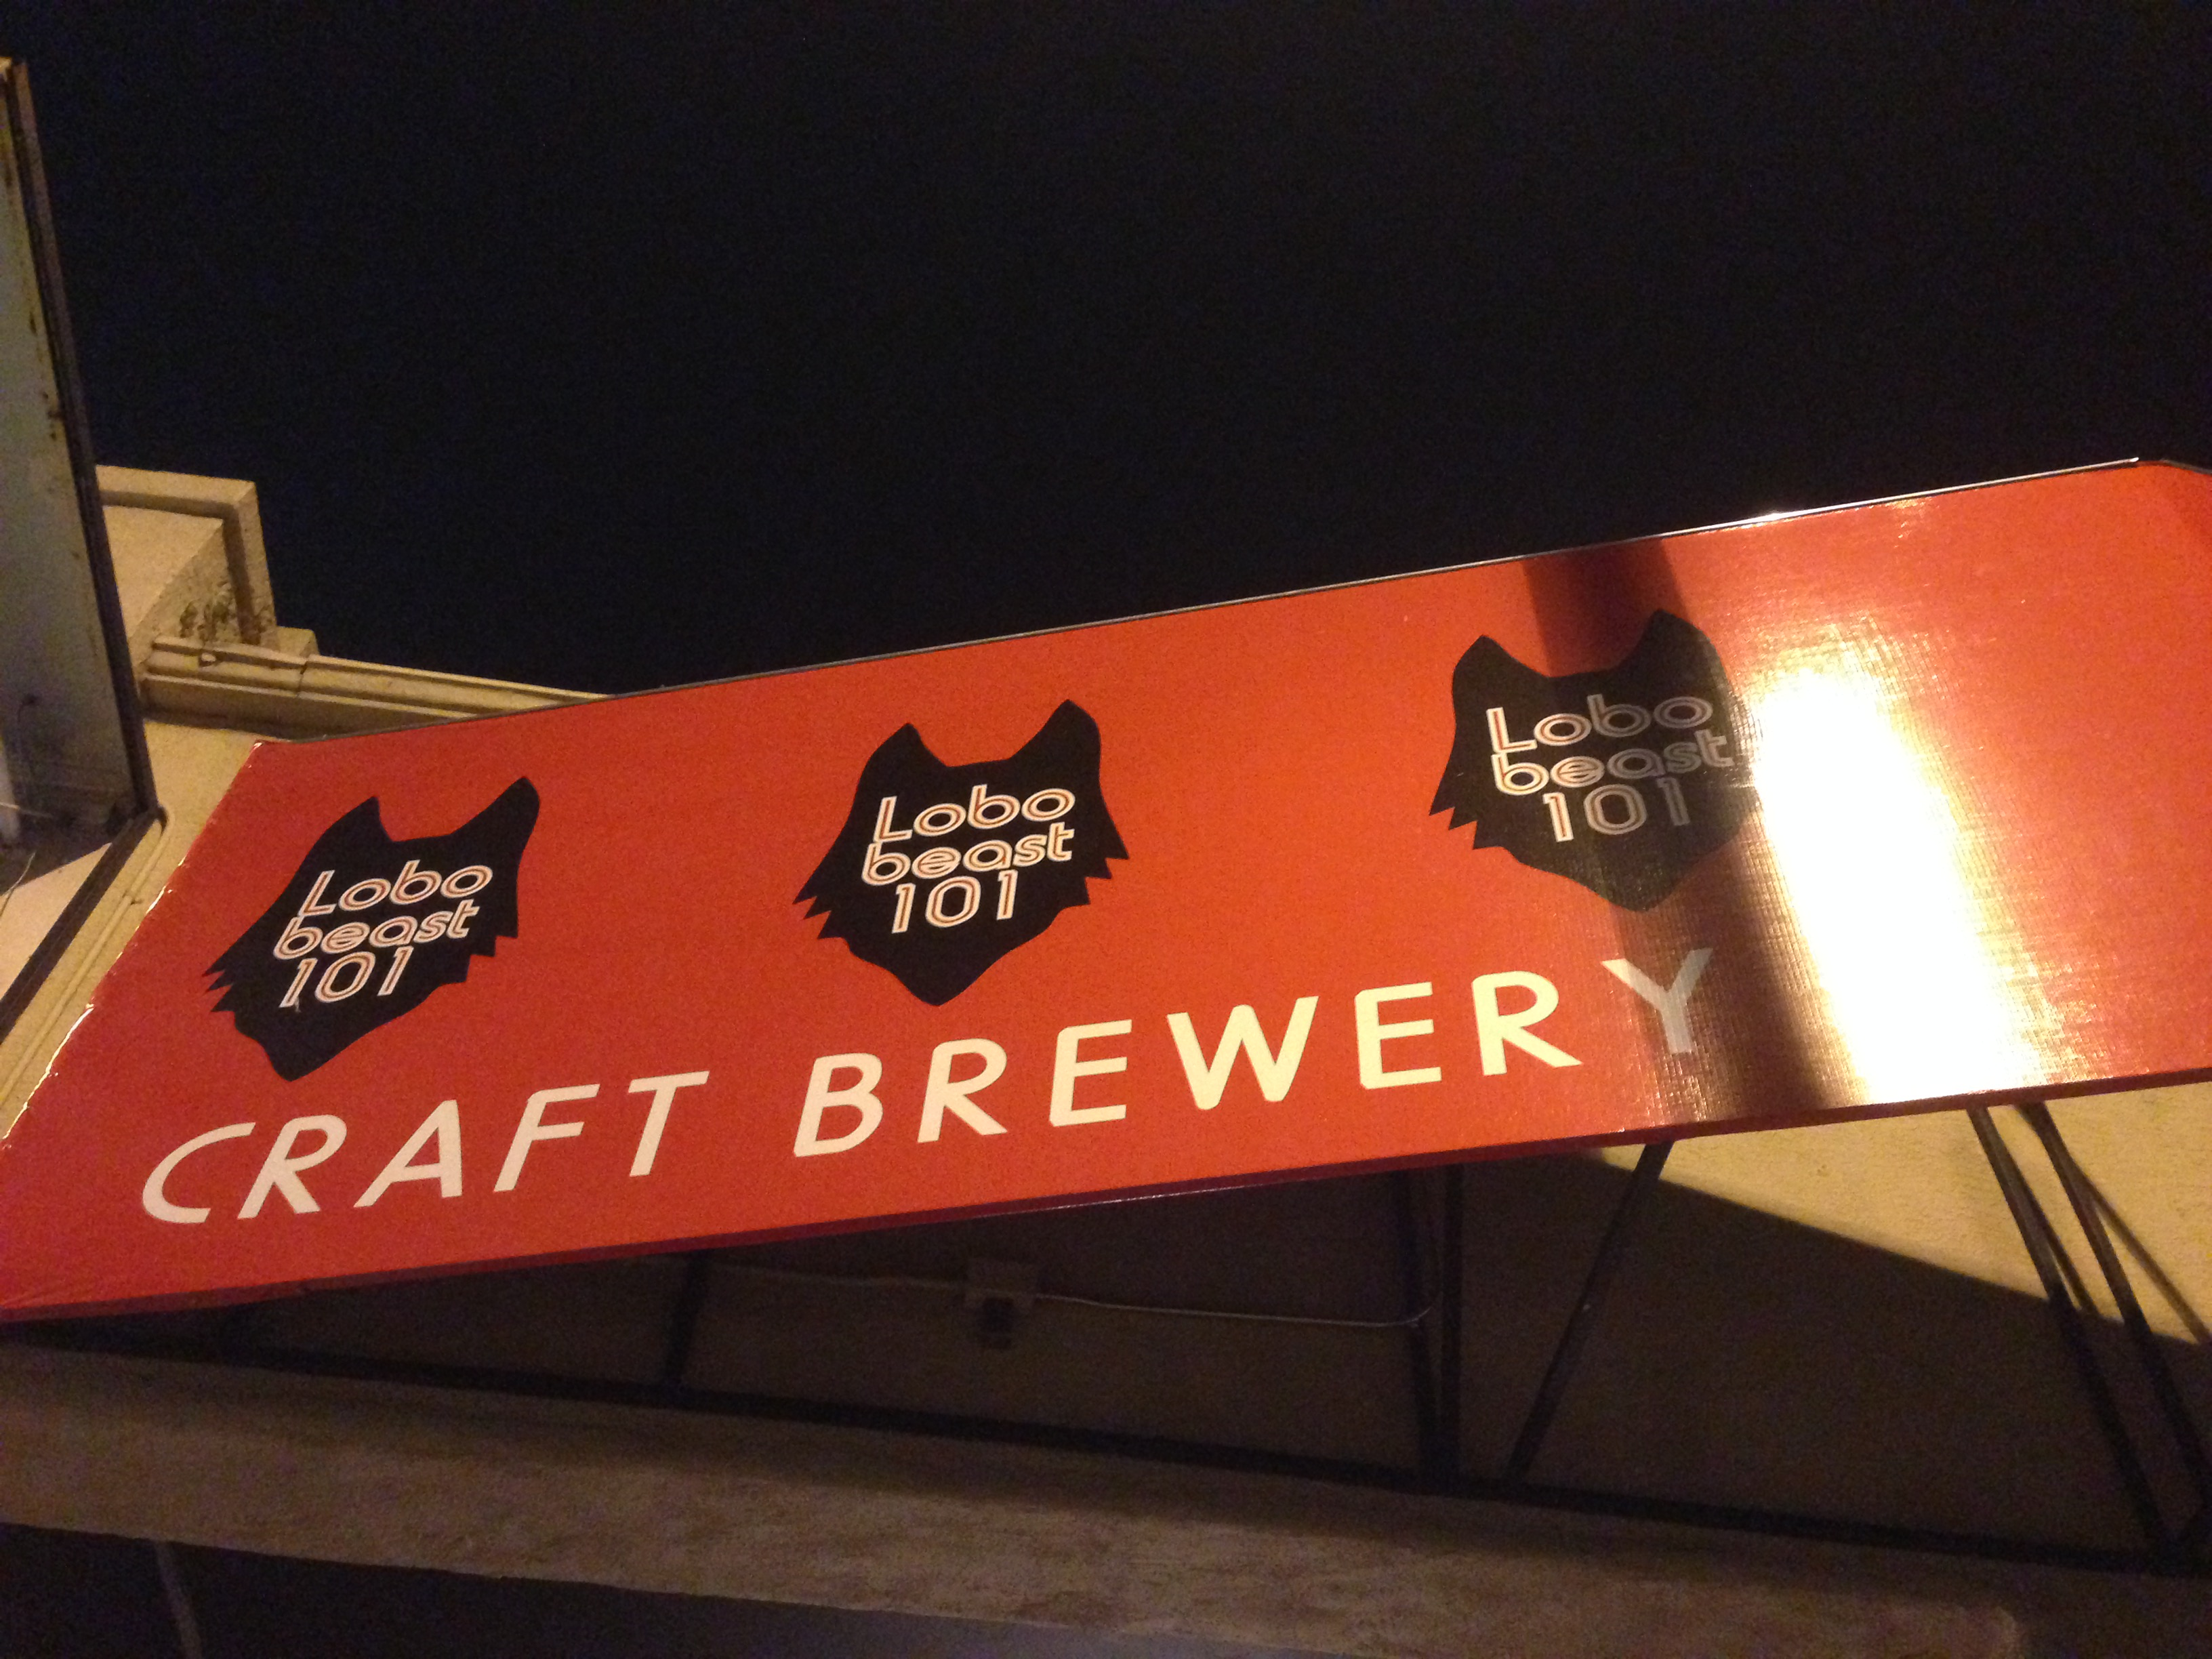 Craft beer in Albuquerque,New Mexico